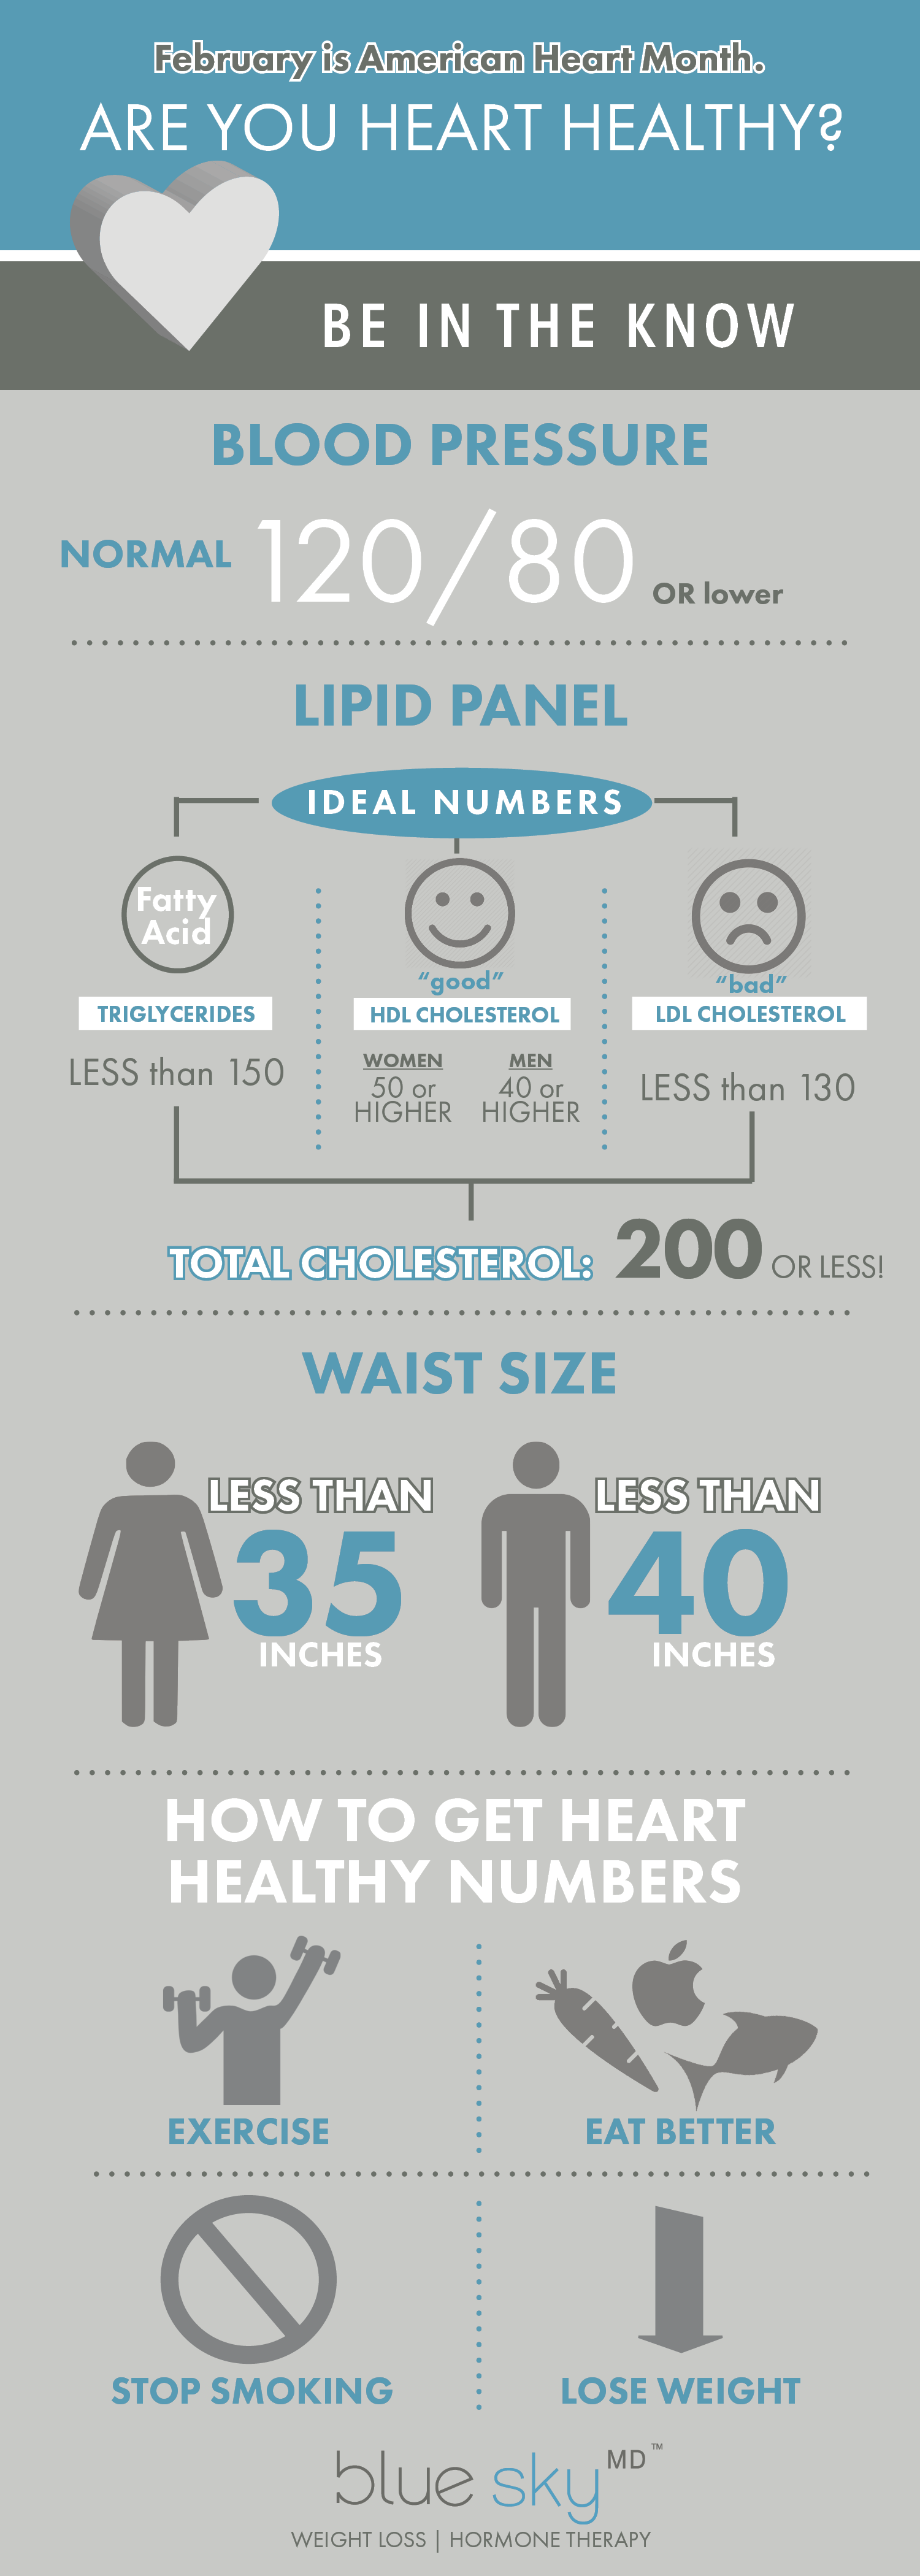 Are you heart healthy?! Here are the crucial numbers you need to know!